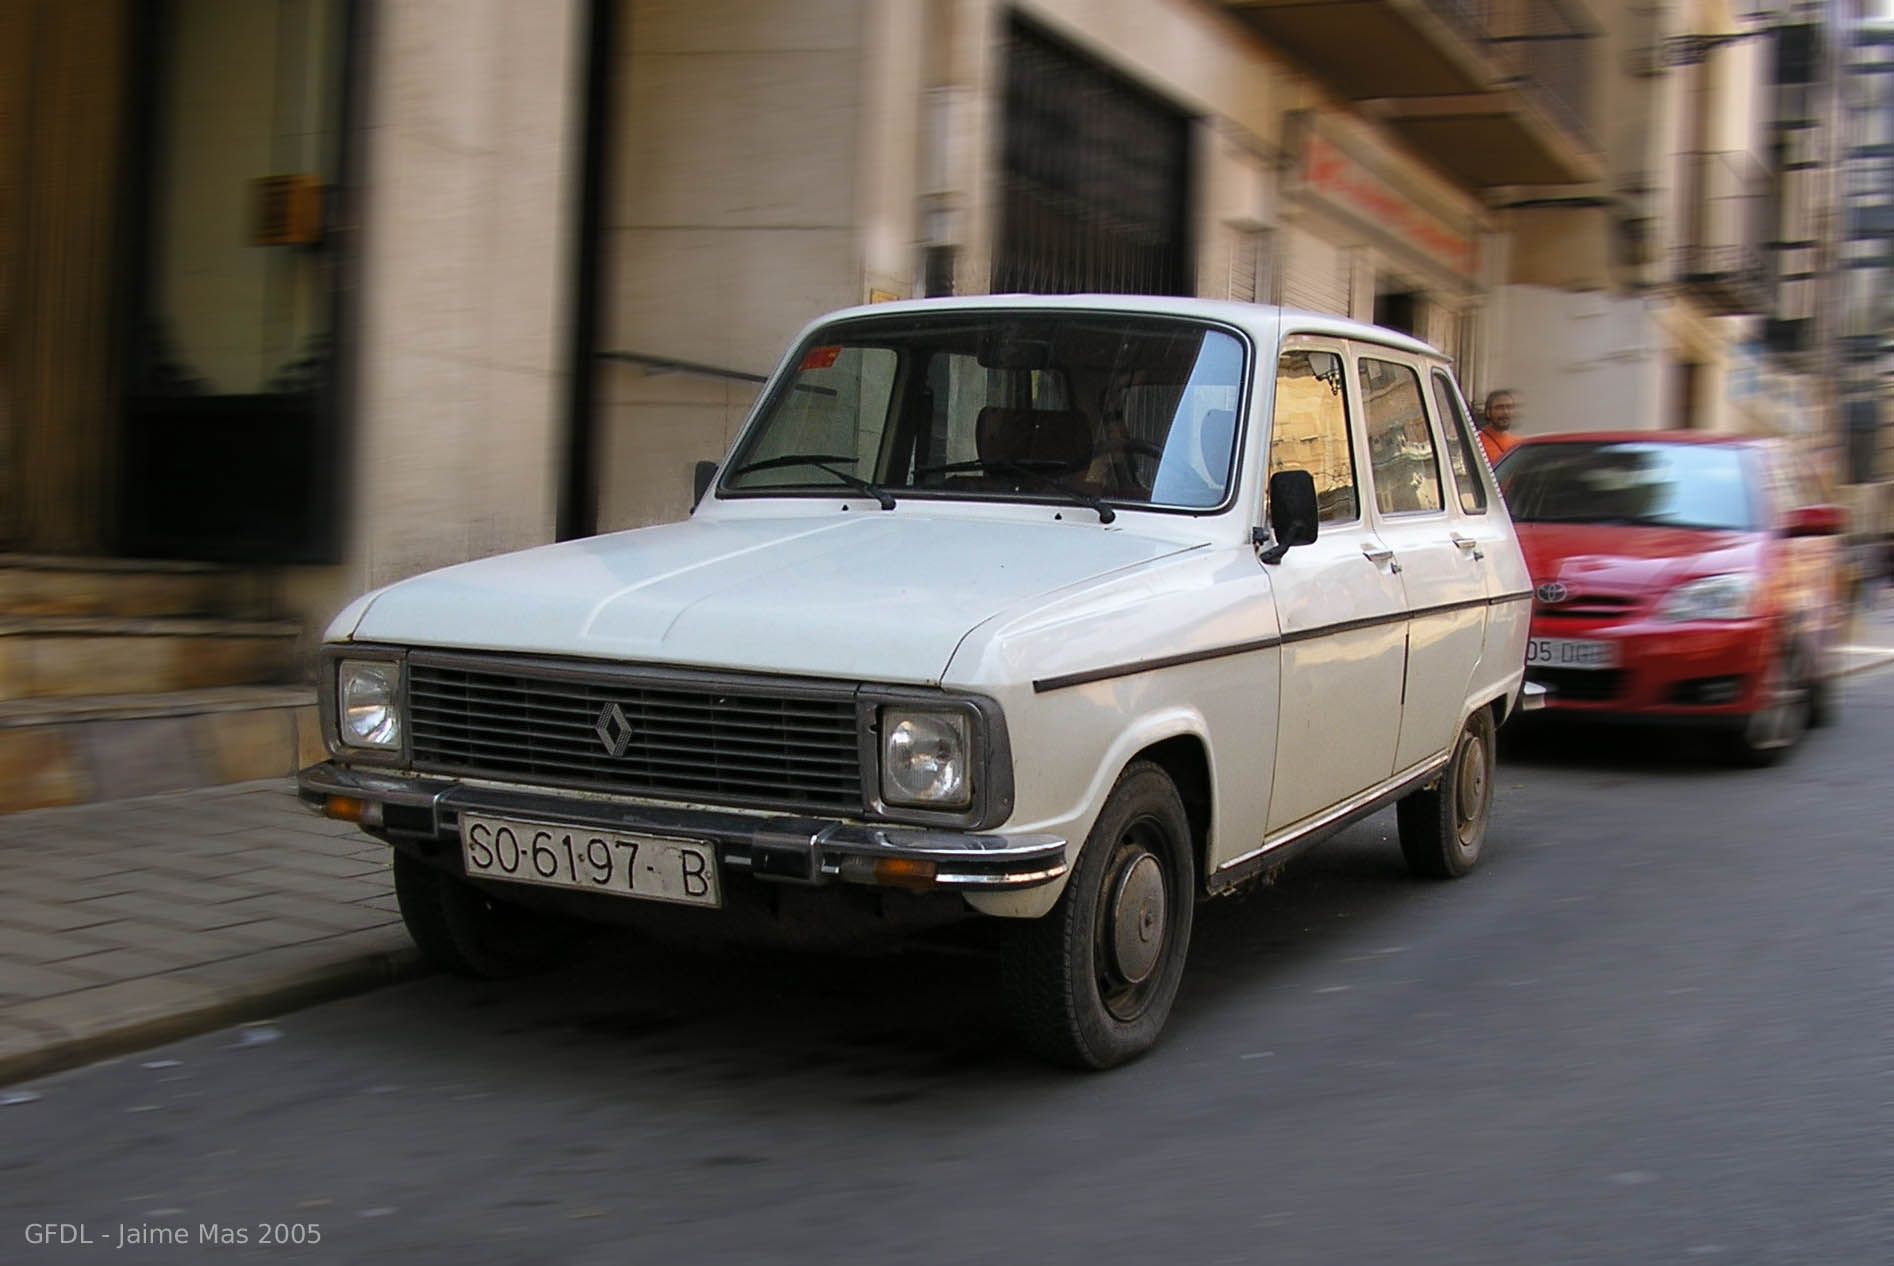 Renault 6 front High Resolution Image Wallpapers Backgrounds